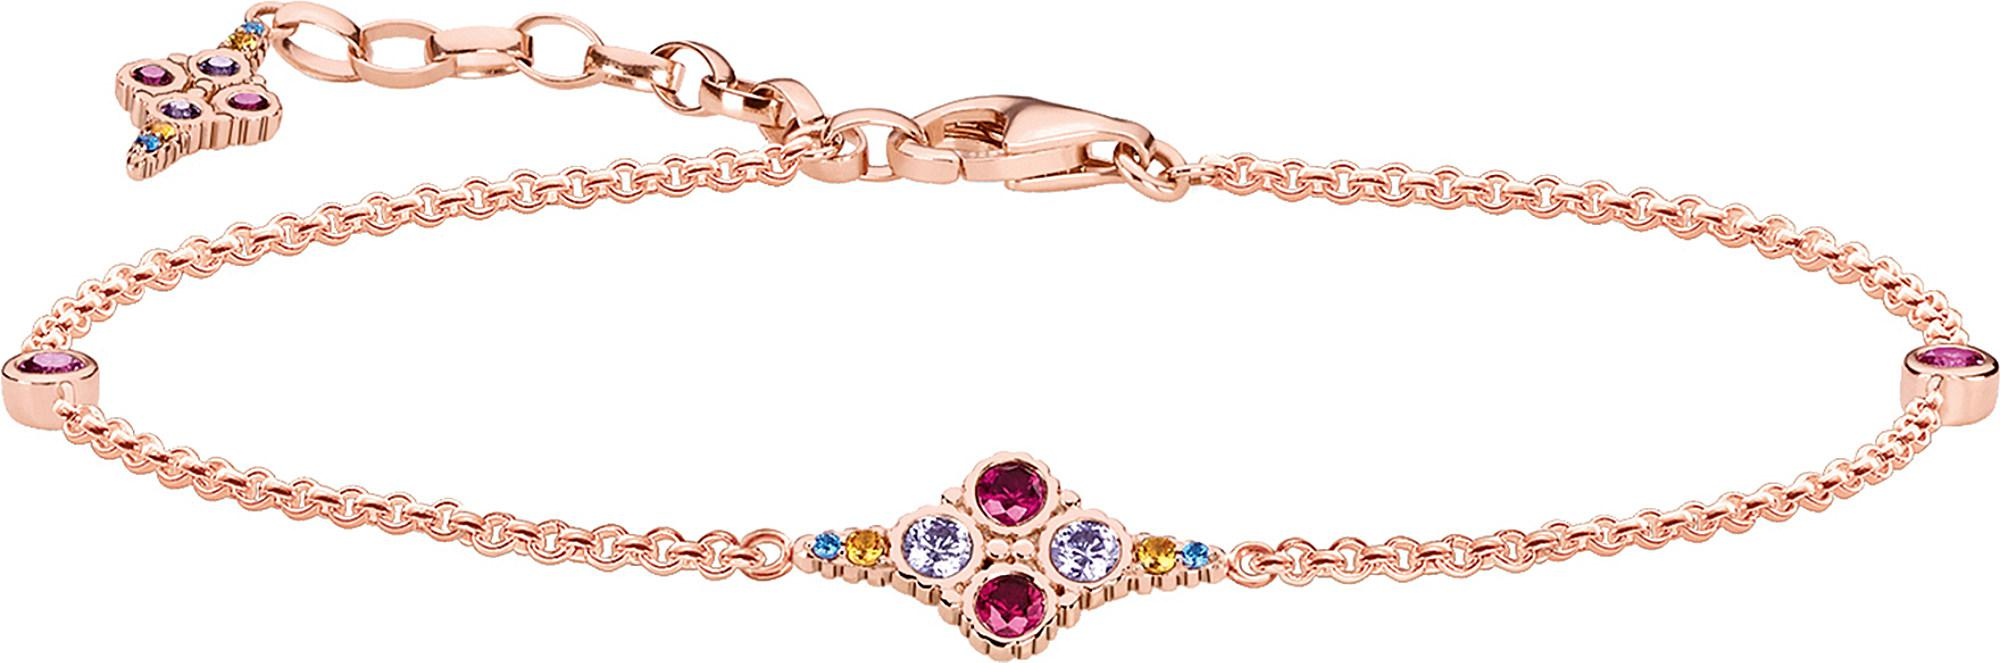 f421e82e7 Thomas Sabo Royalty 18ct Rose Gold-plated Bracelet in Metallic - Lyst